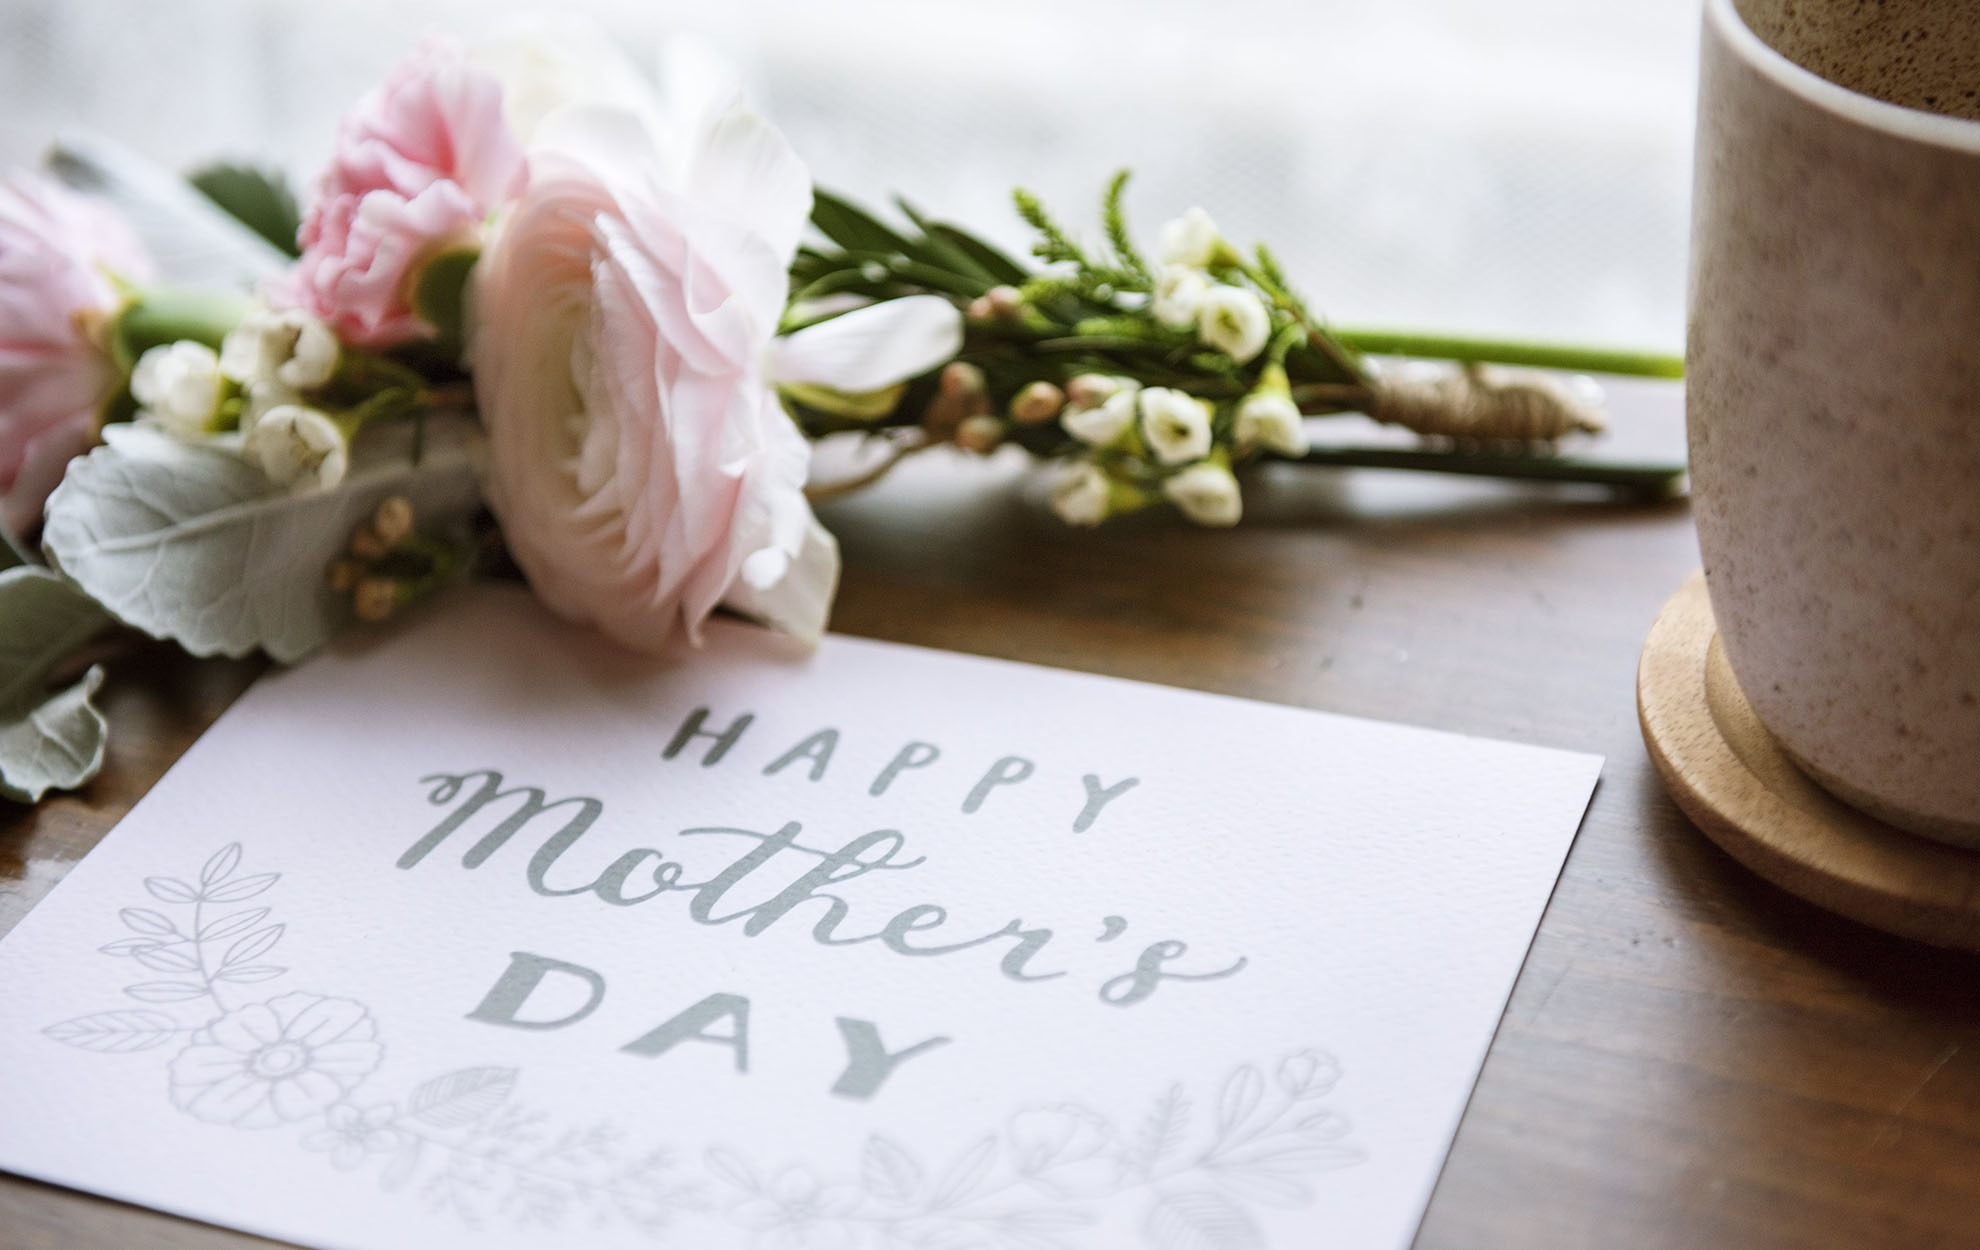 Send Her a Mother's Day Letter